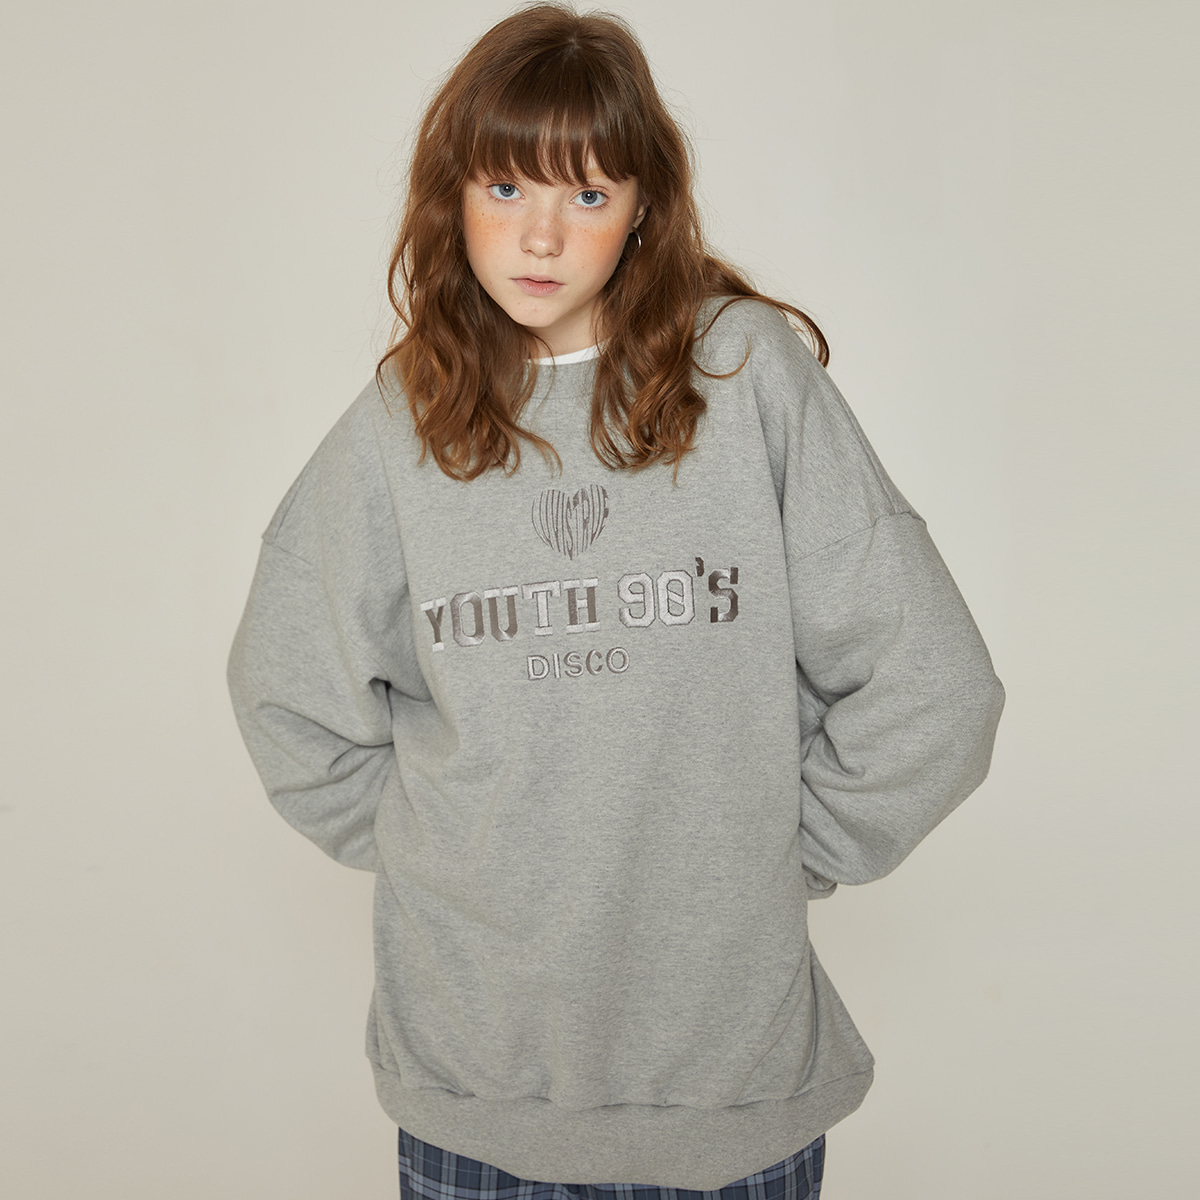 DT 90S SWEATSHIRT(GRAY)